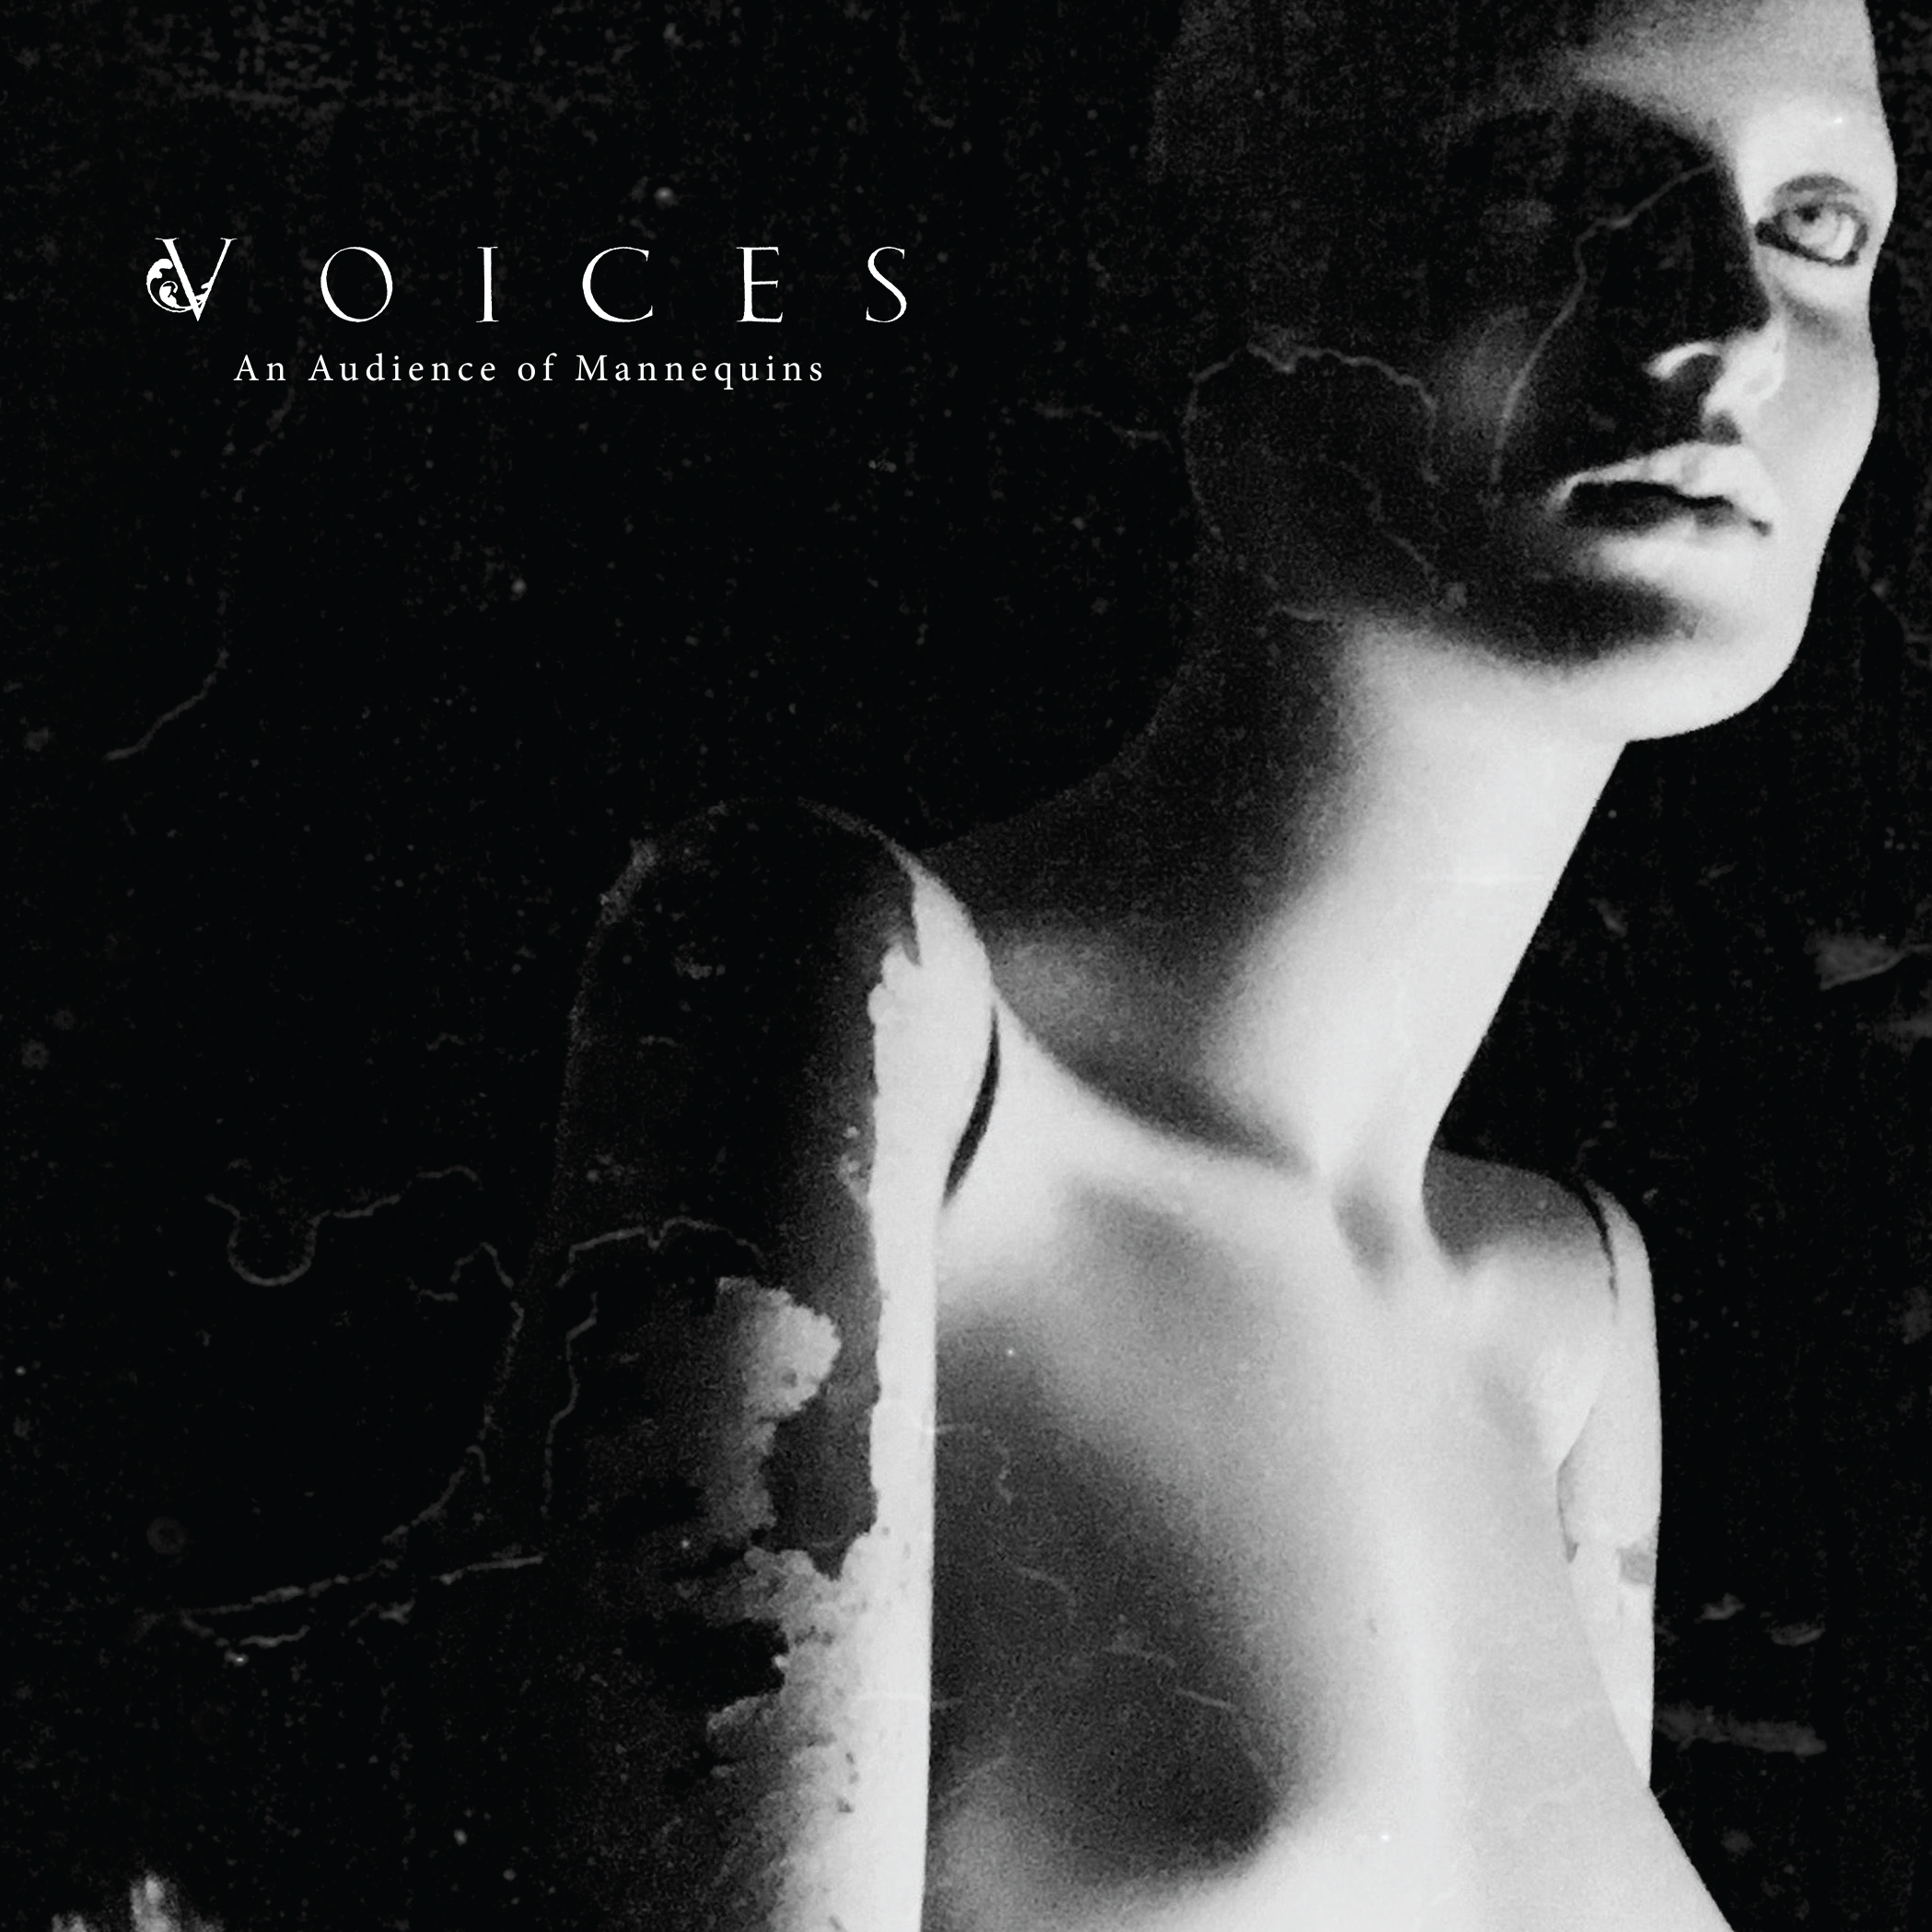 Voices - An Audience of Mannequins